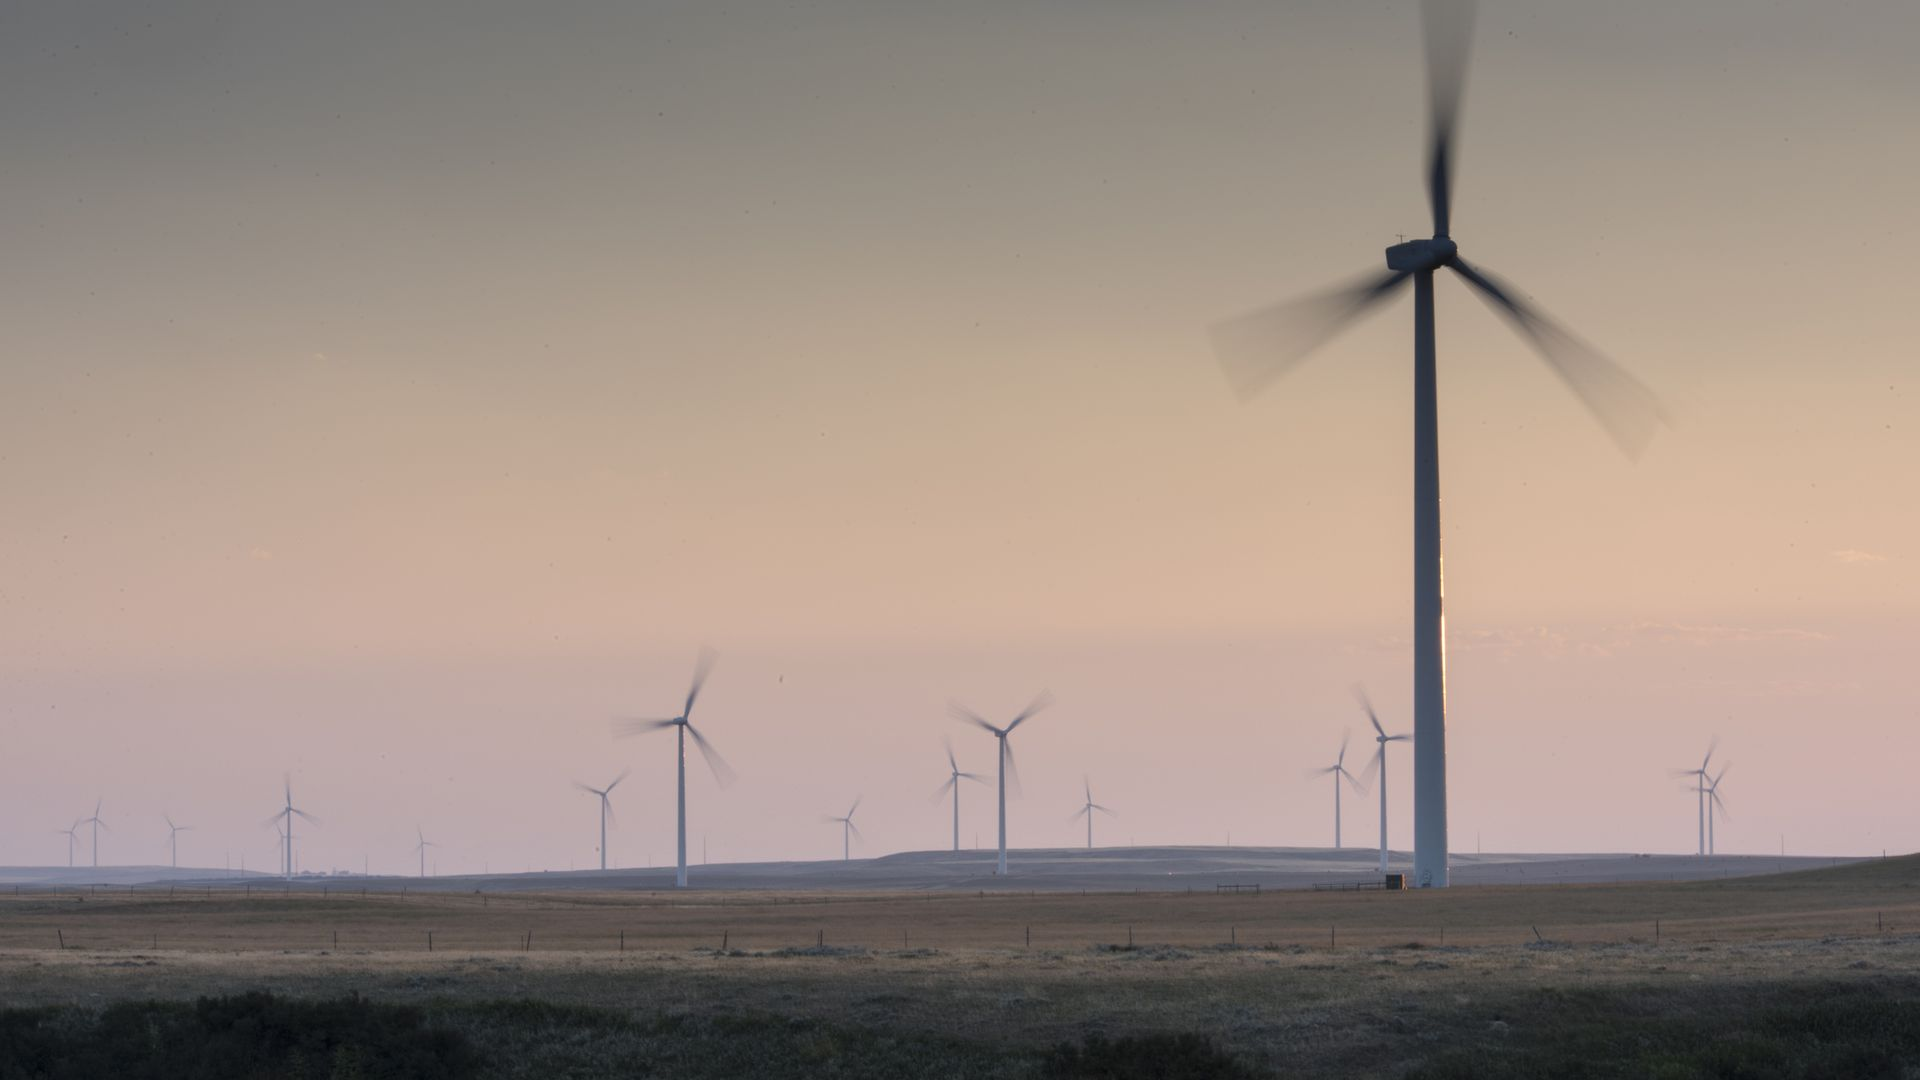 A field of wind turbines spinning in front of a sunset of light pinks and oranges